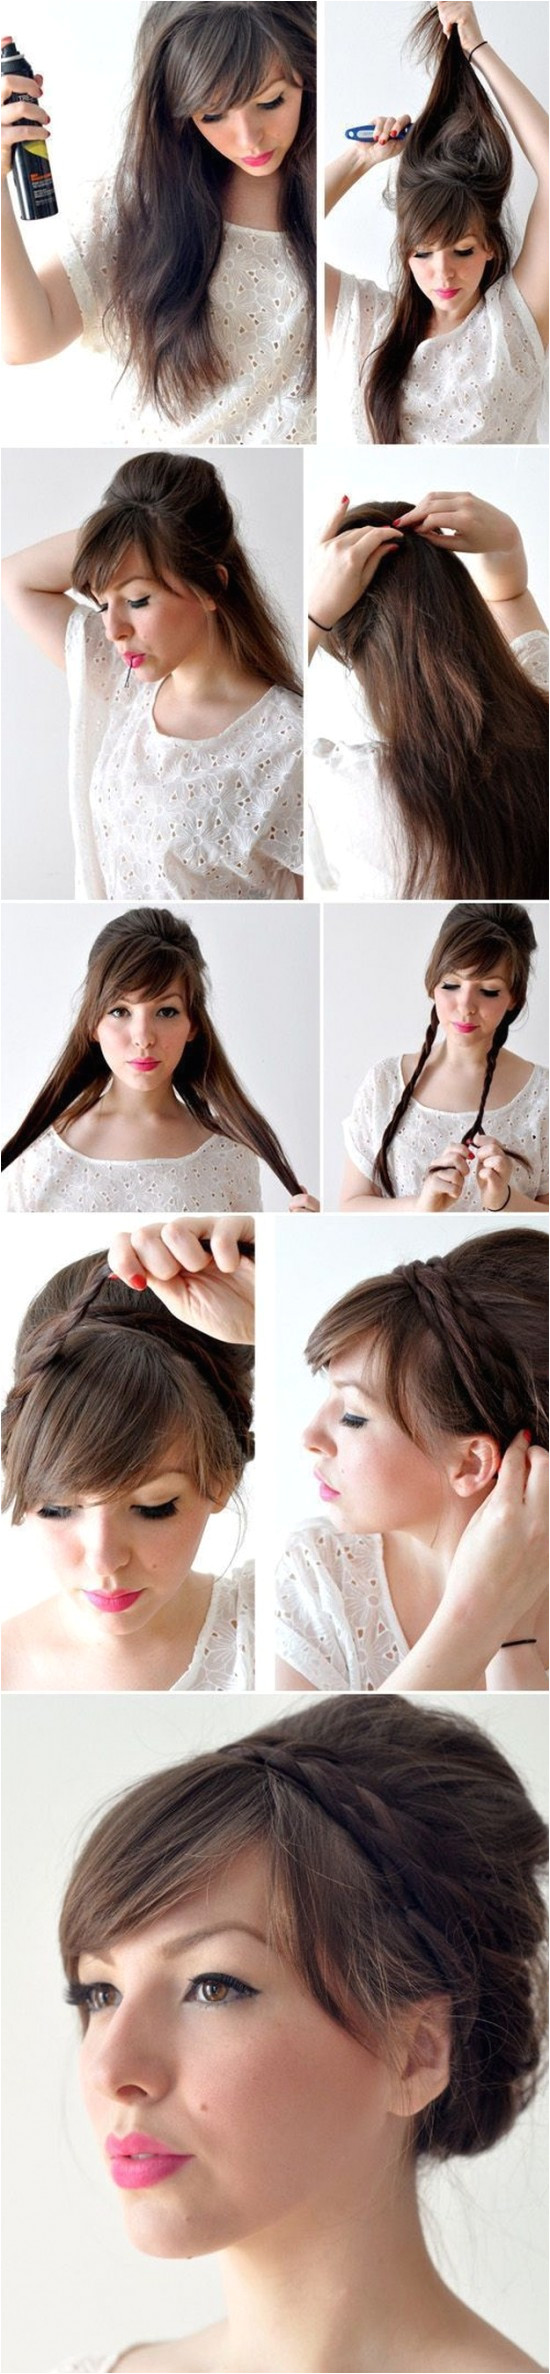 Creative Hairstyles That You Can Easily Do at Home 011